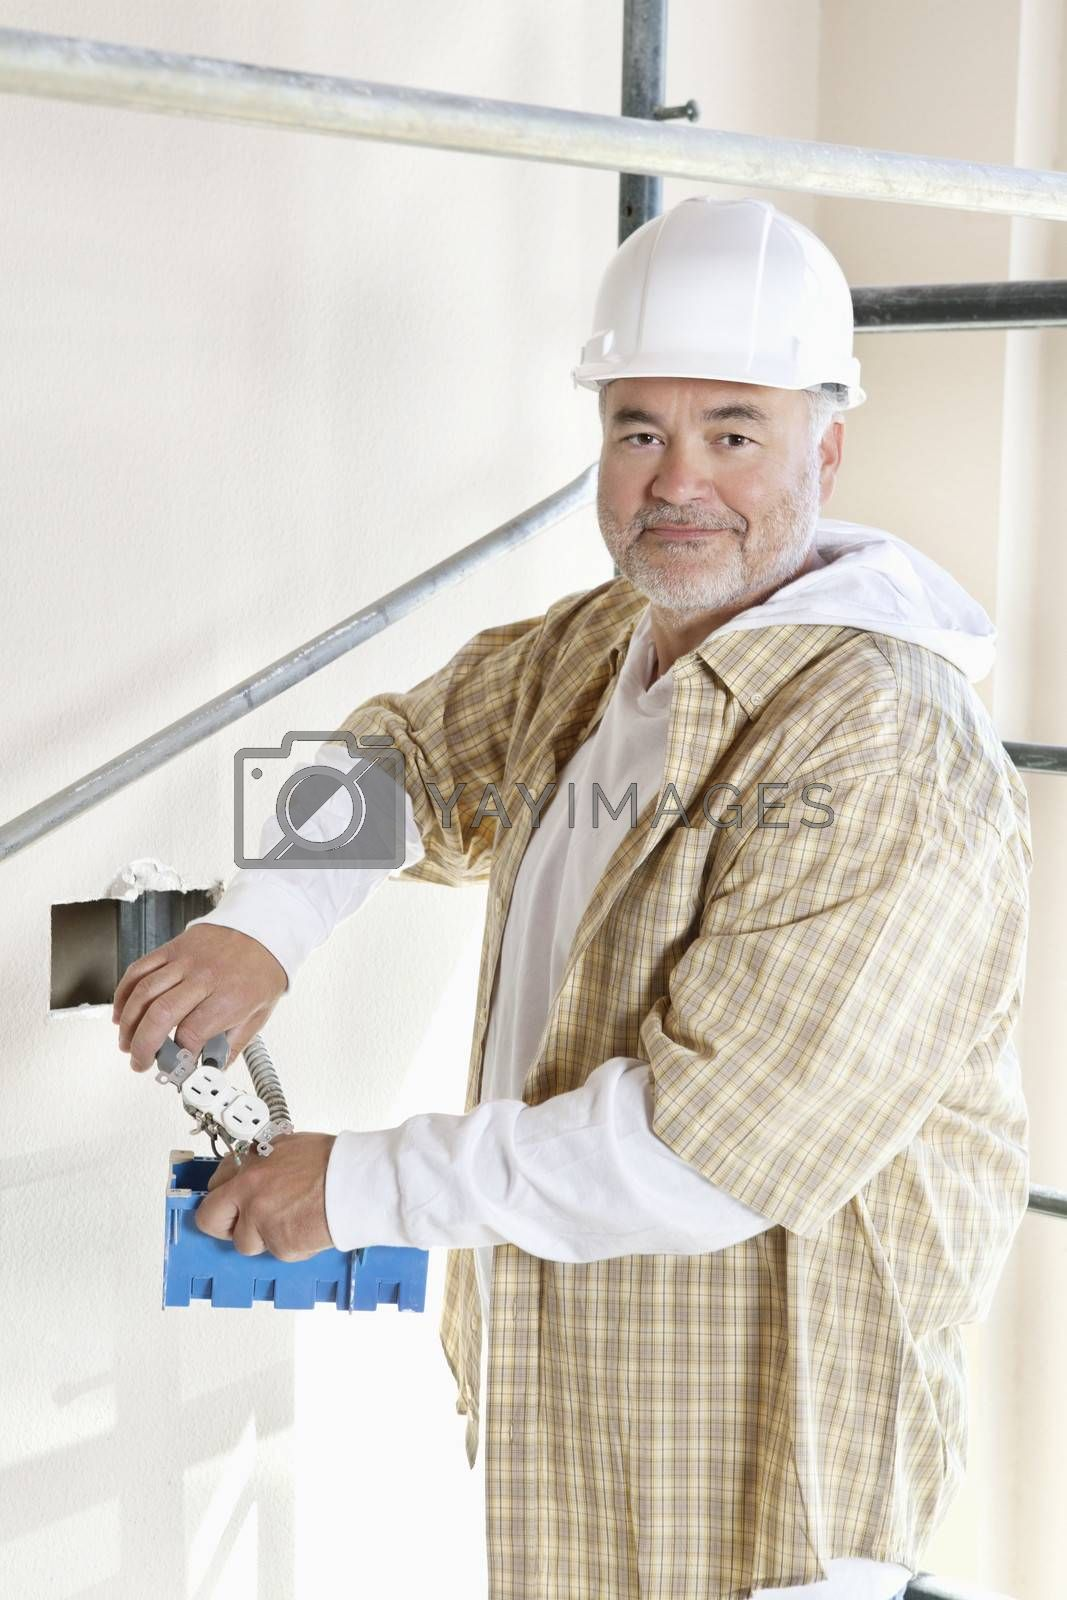 Portrait of a mature man holding construction equipment